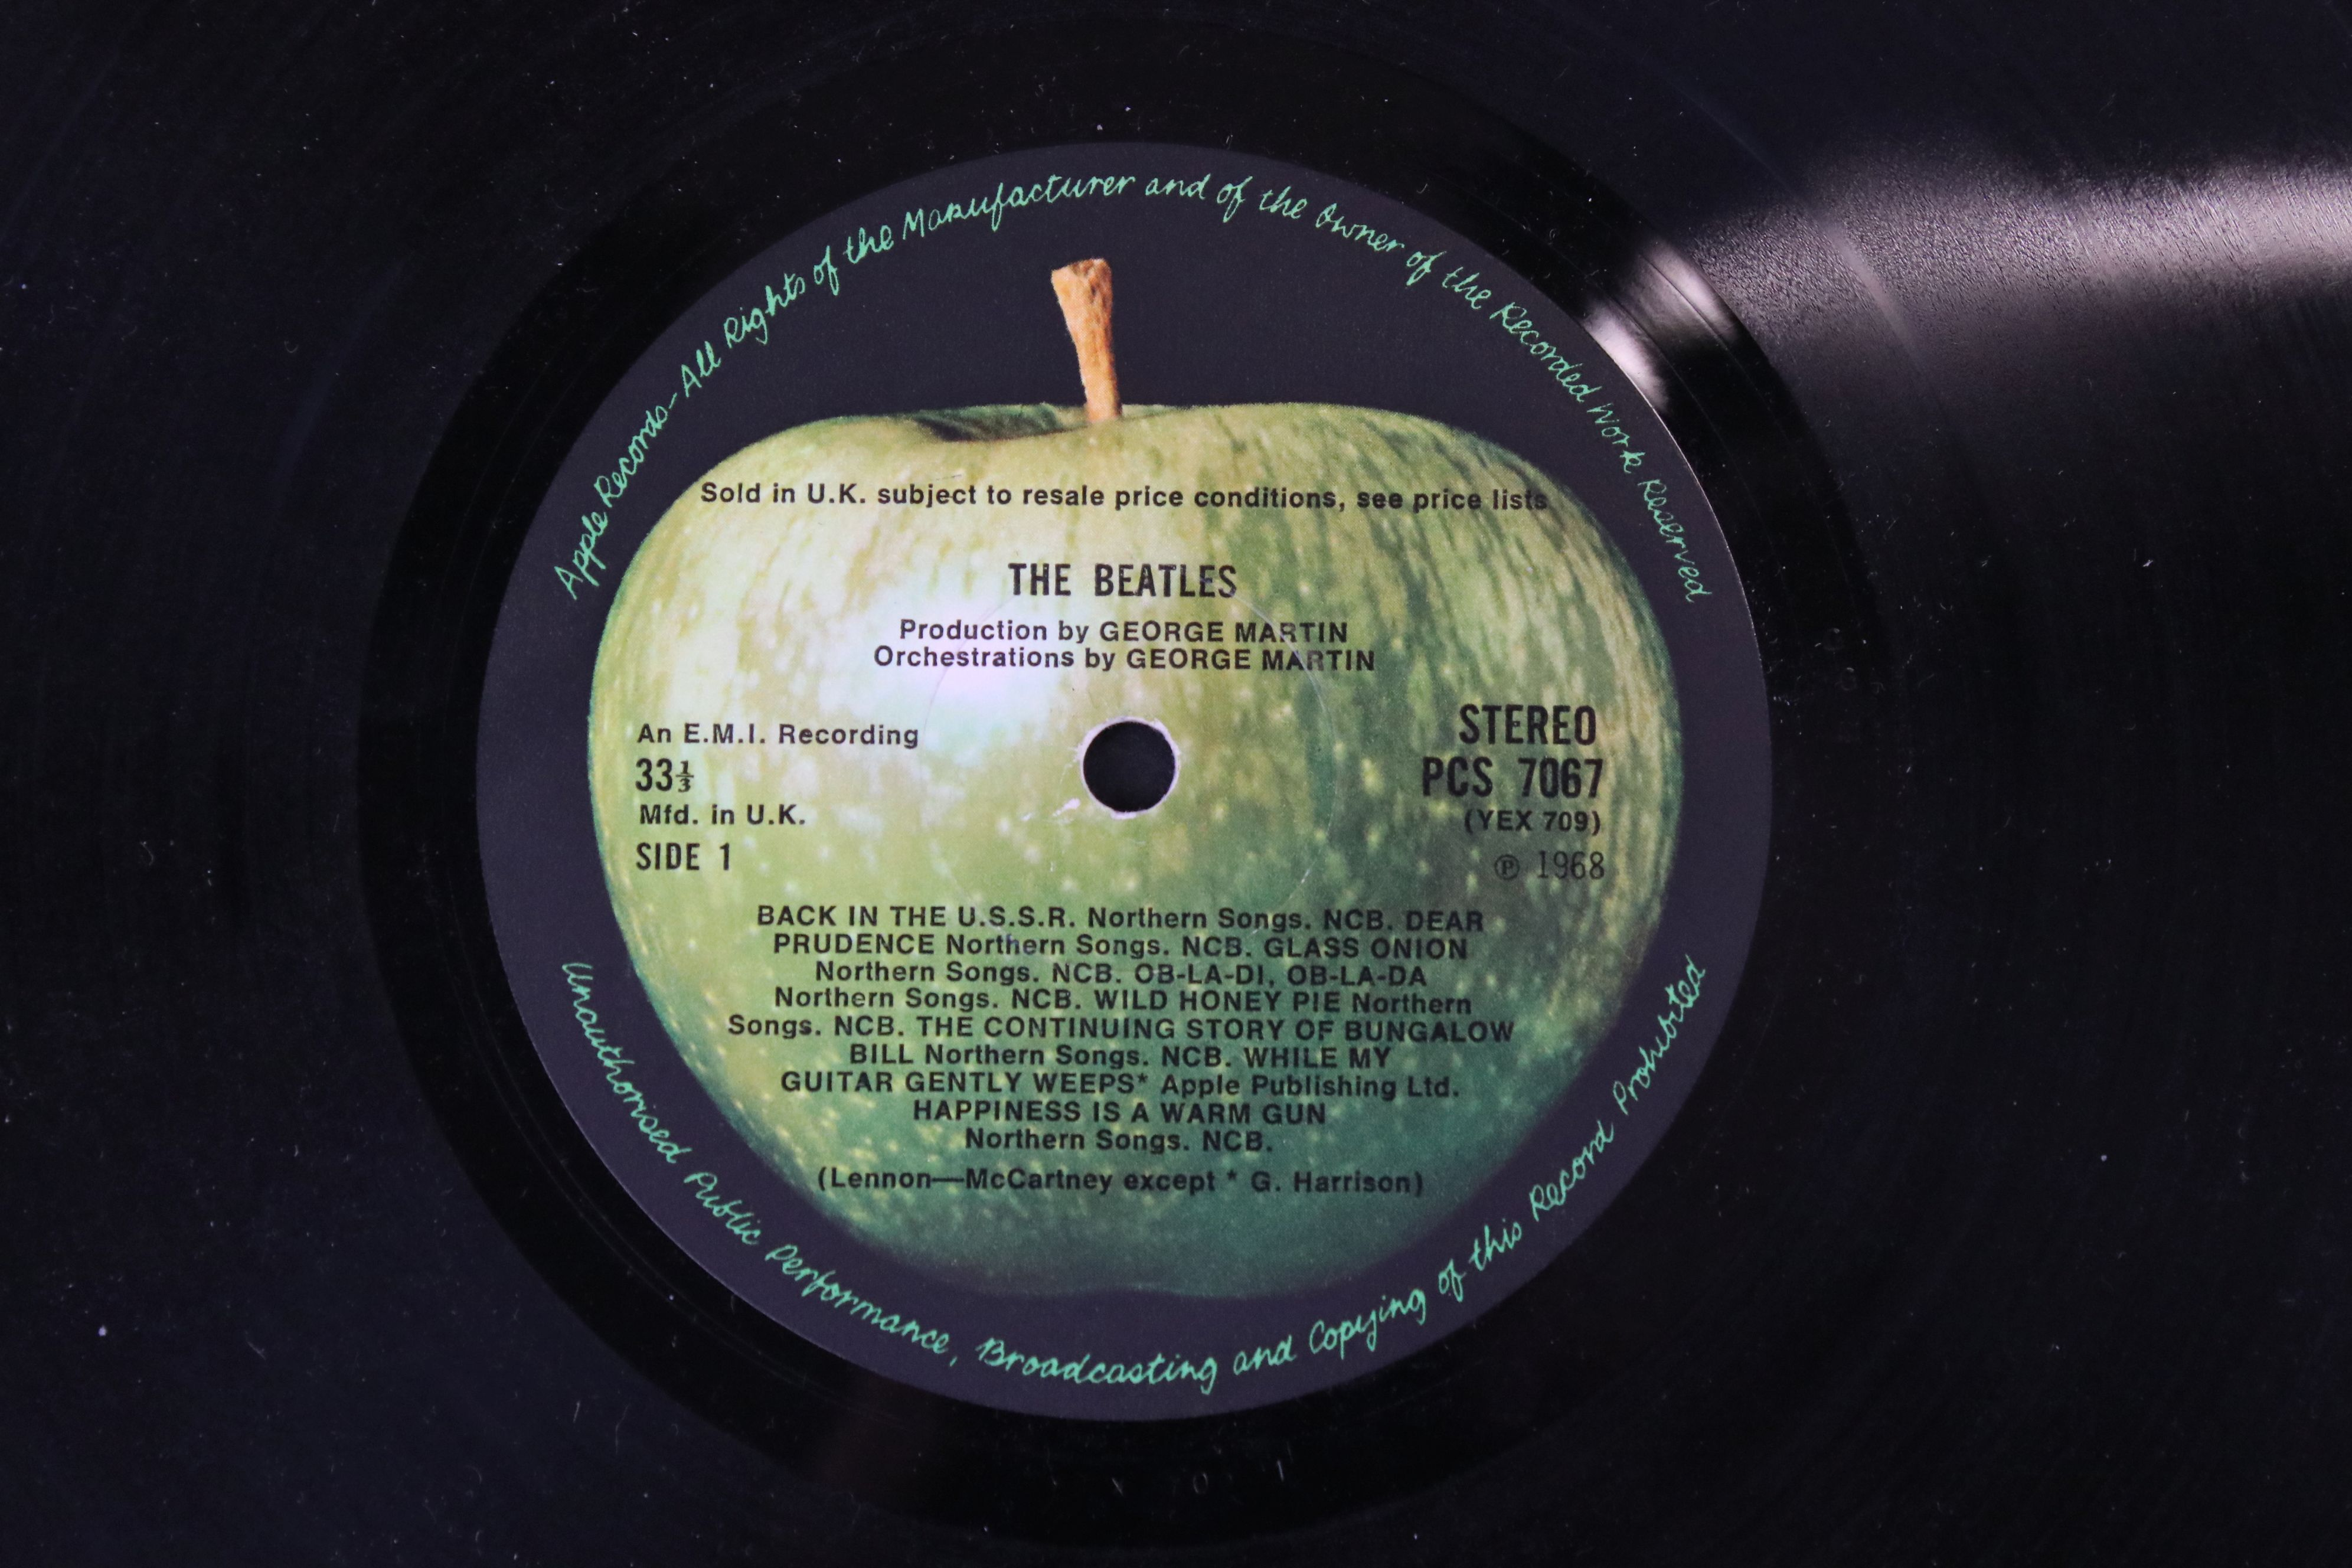 Vinyl - The Beatles White Album LP mono PMC7067-8, numbered 0001376 with 8 x coloured prints and - Image 2 of 10